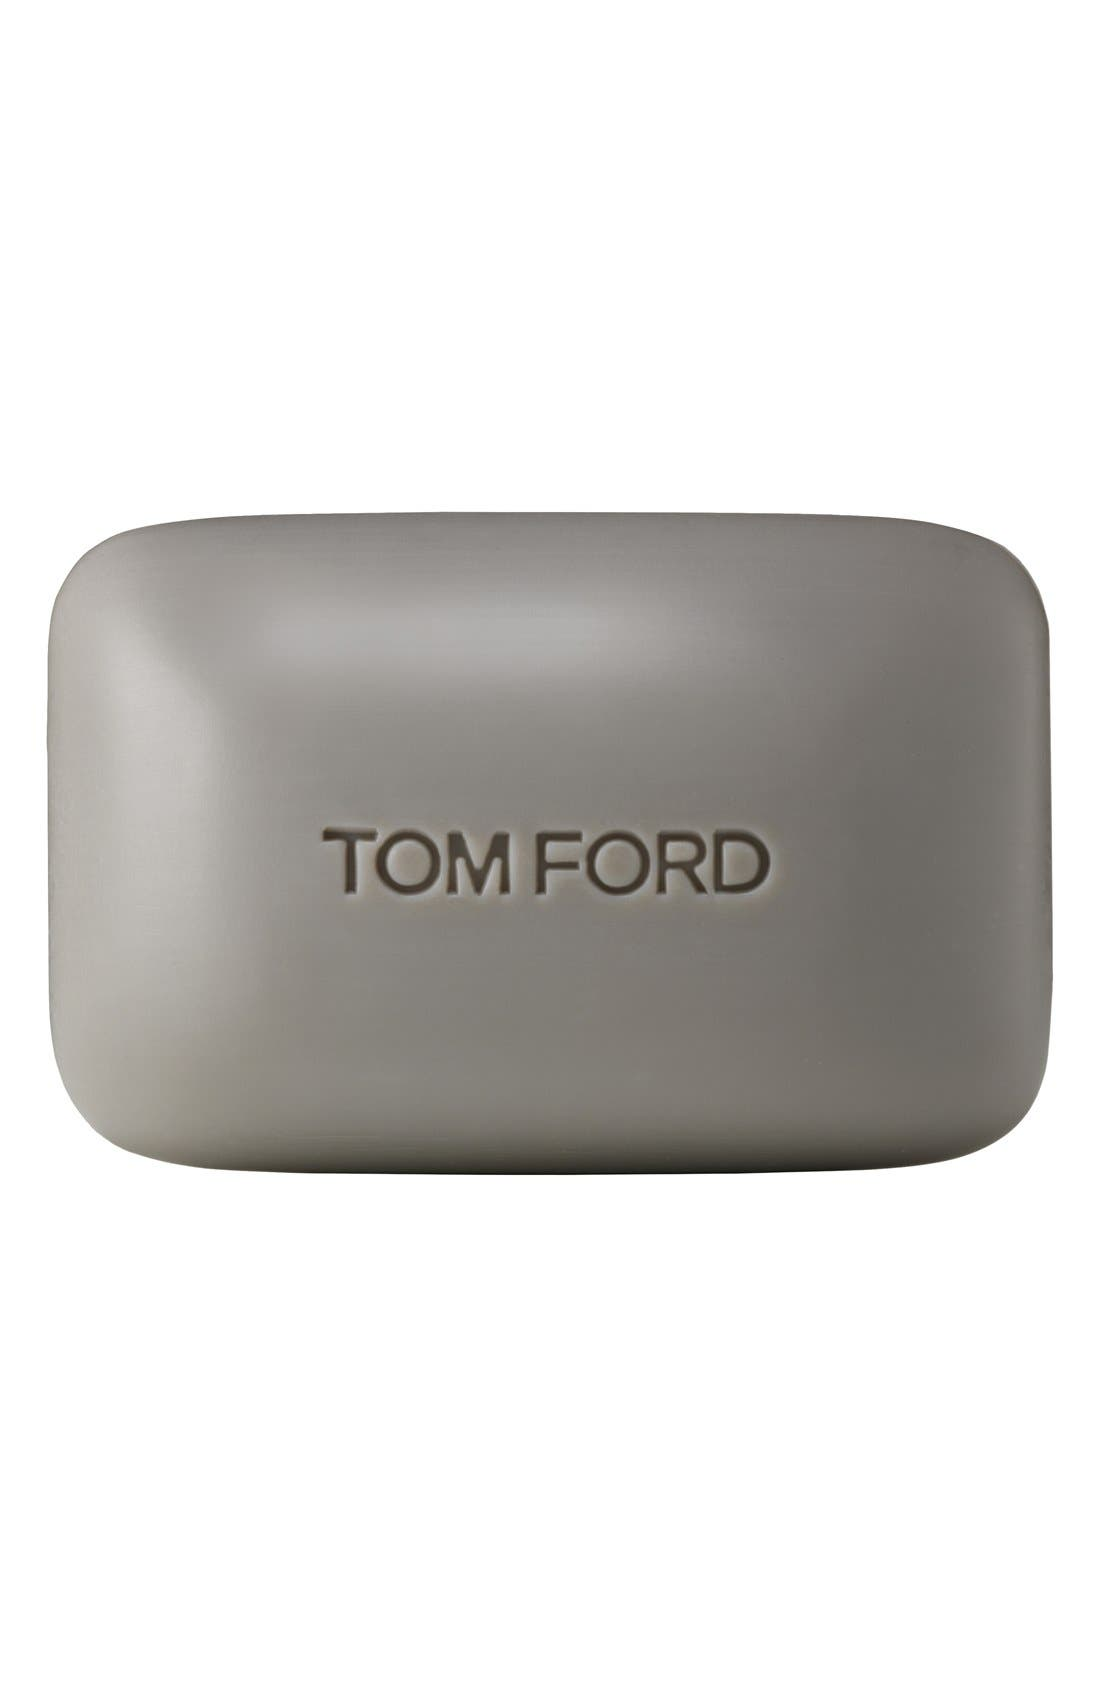 Tom Ford 'Oud Wood' Bar Soap